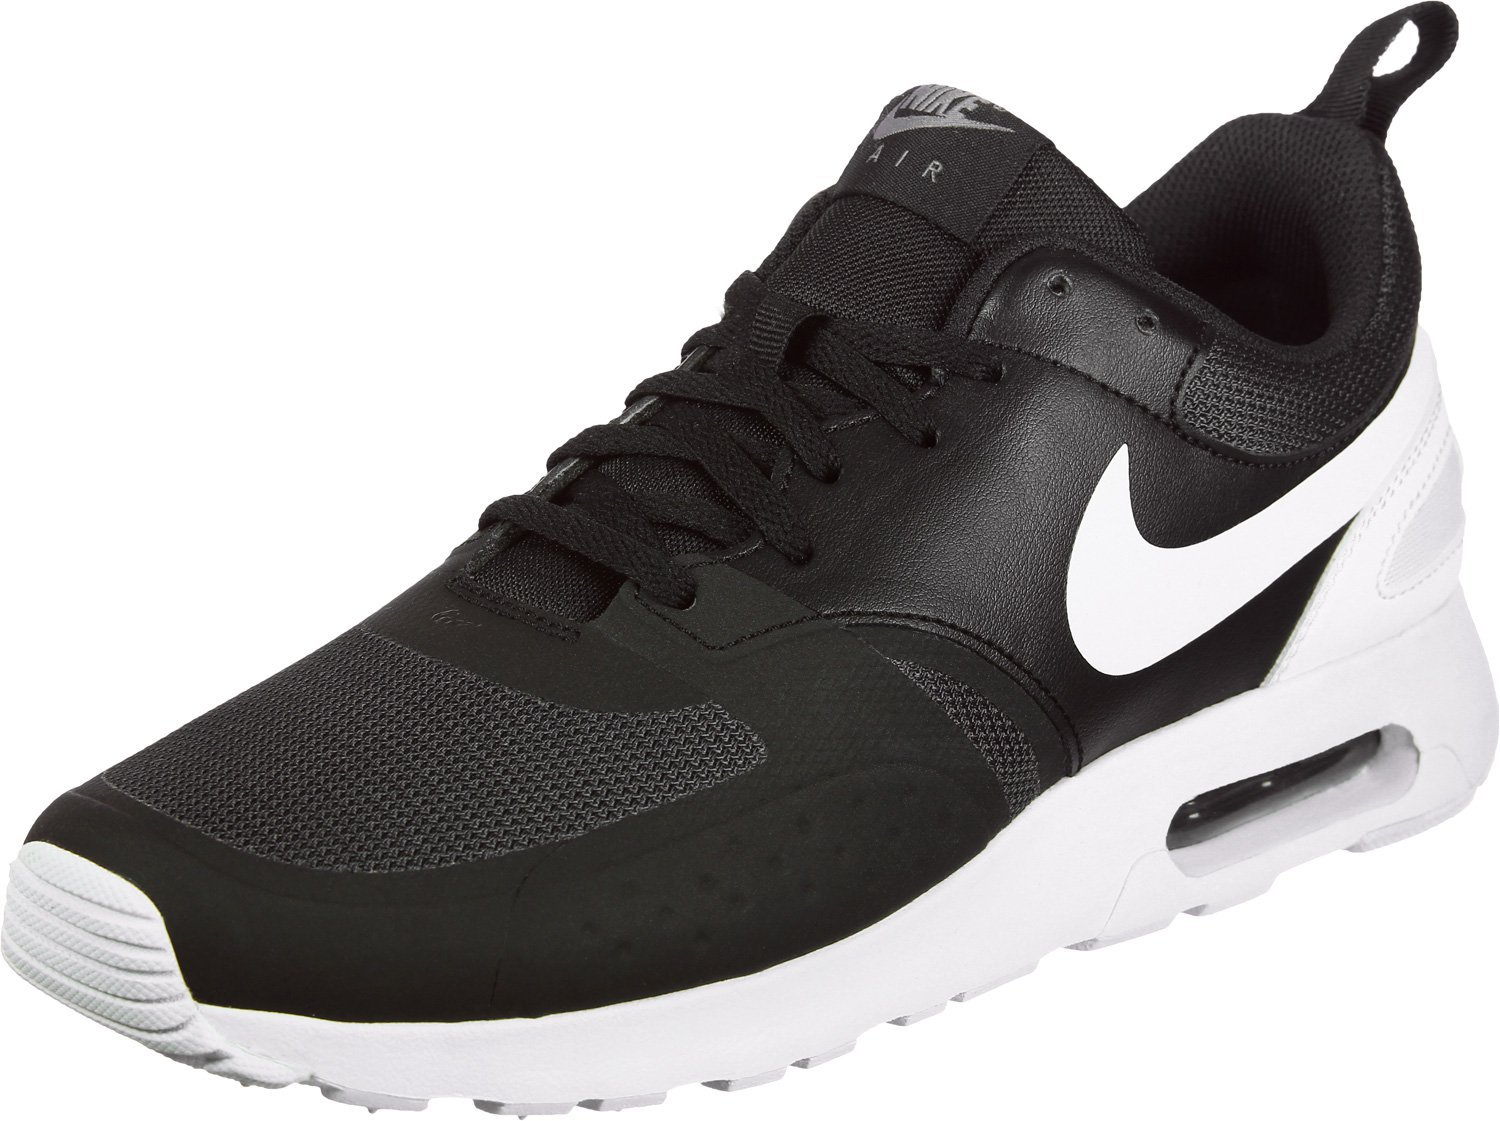 0bc0fb813698b3 Nike Air Max Vision black white-anthracite günstig kaufen